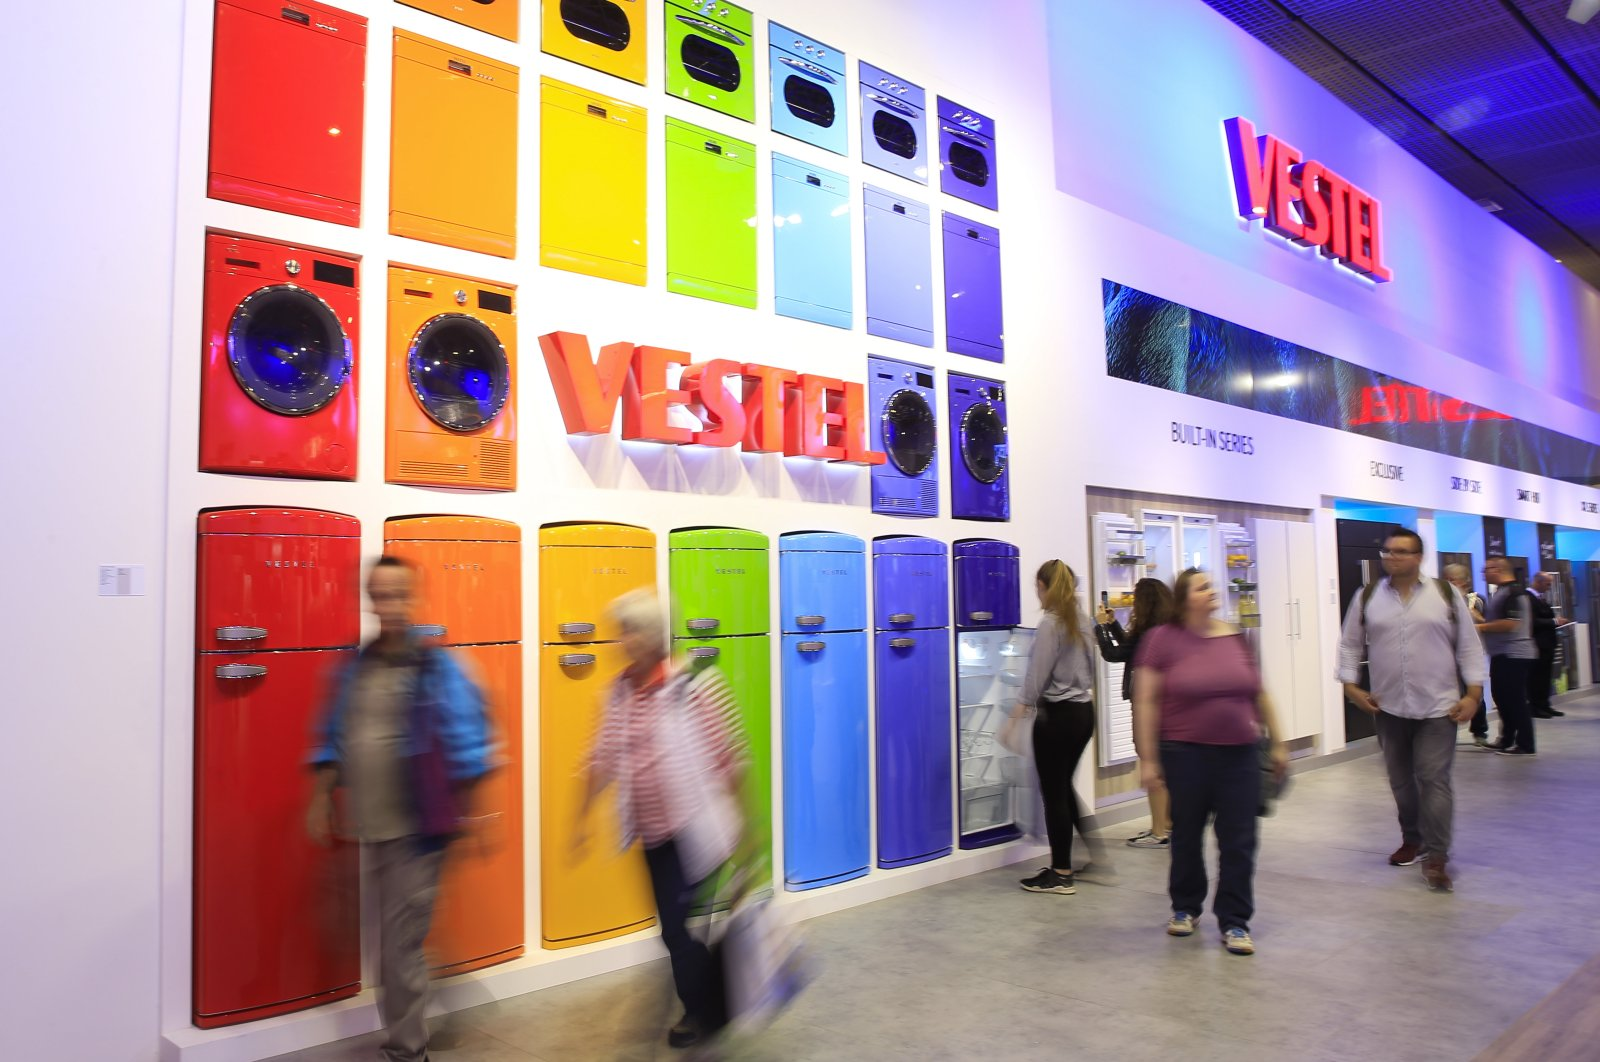 Vestel products are on display at the IFA industrial exhibition, a main global event for consumer electronics, in Berlin, Germany, Sept. 7, 2018. (AA Photo)